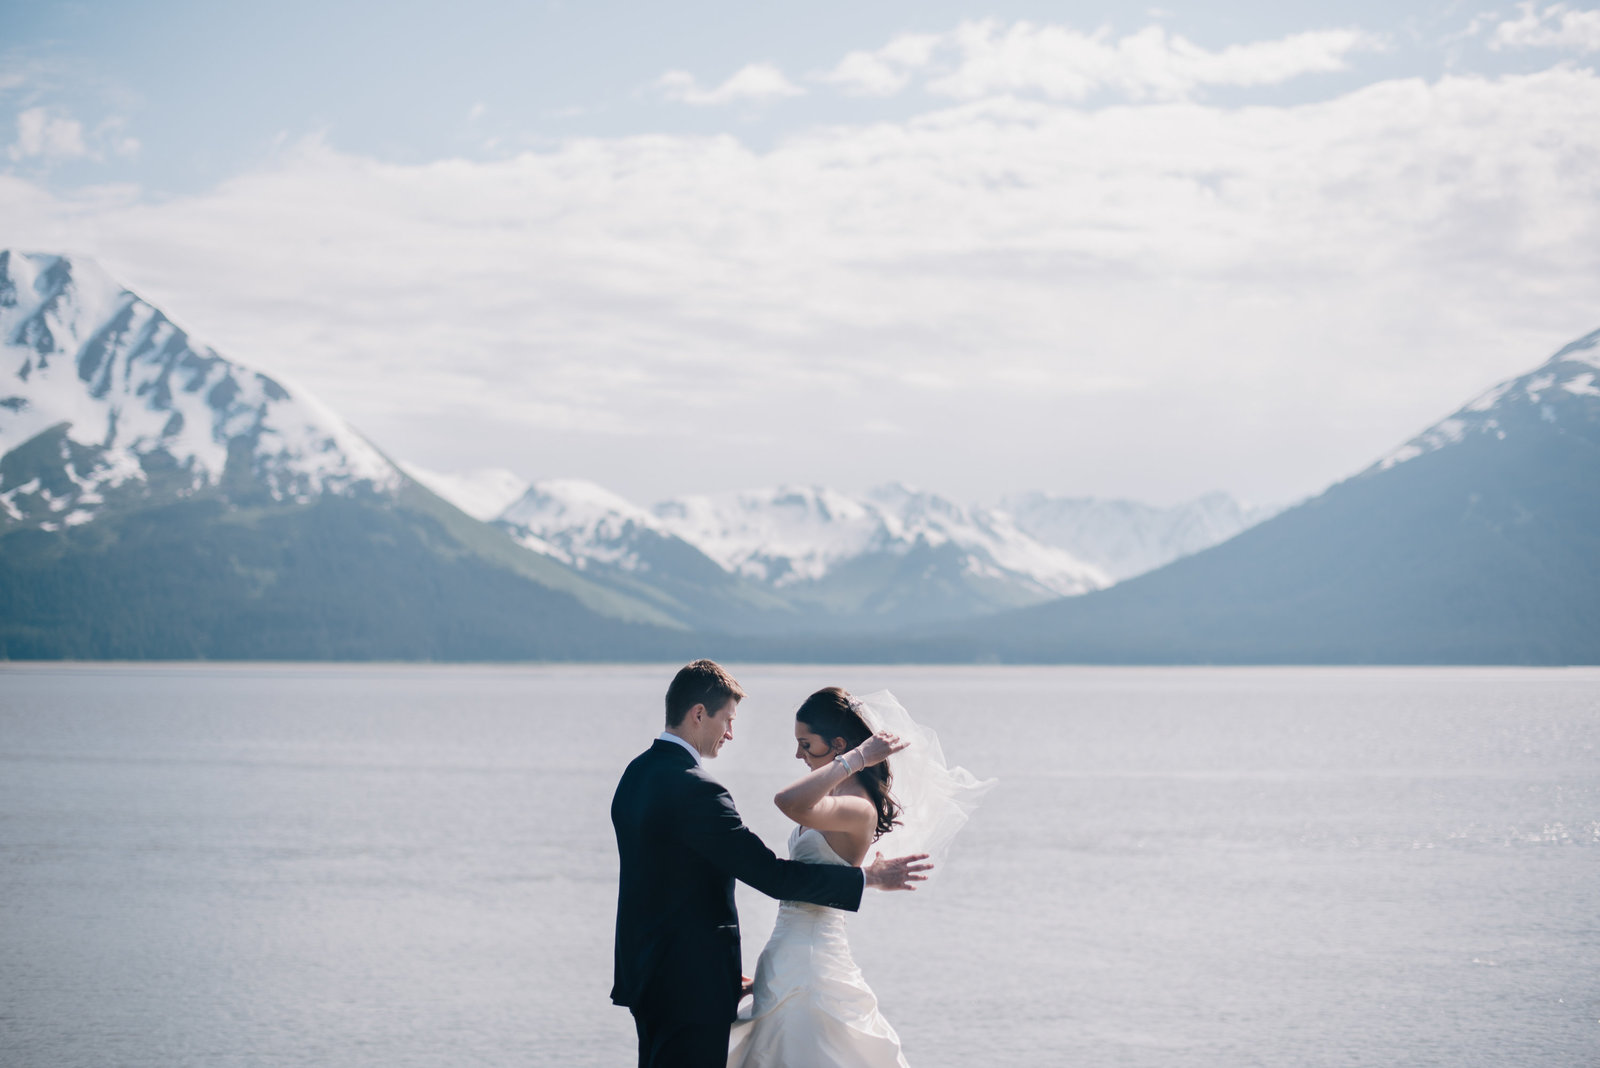 049_Erica Rose Photography_Anchorage Wedding Photographer